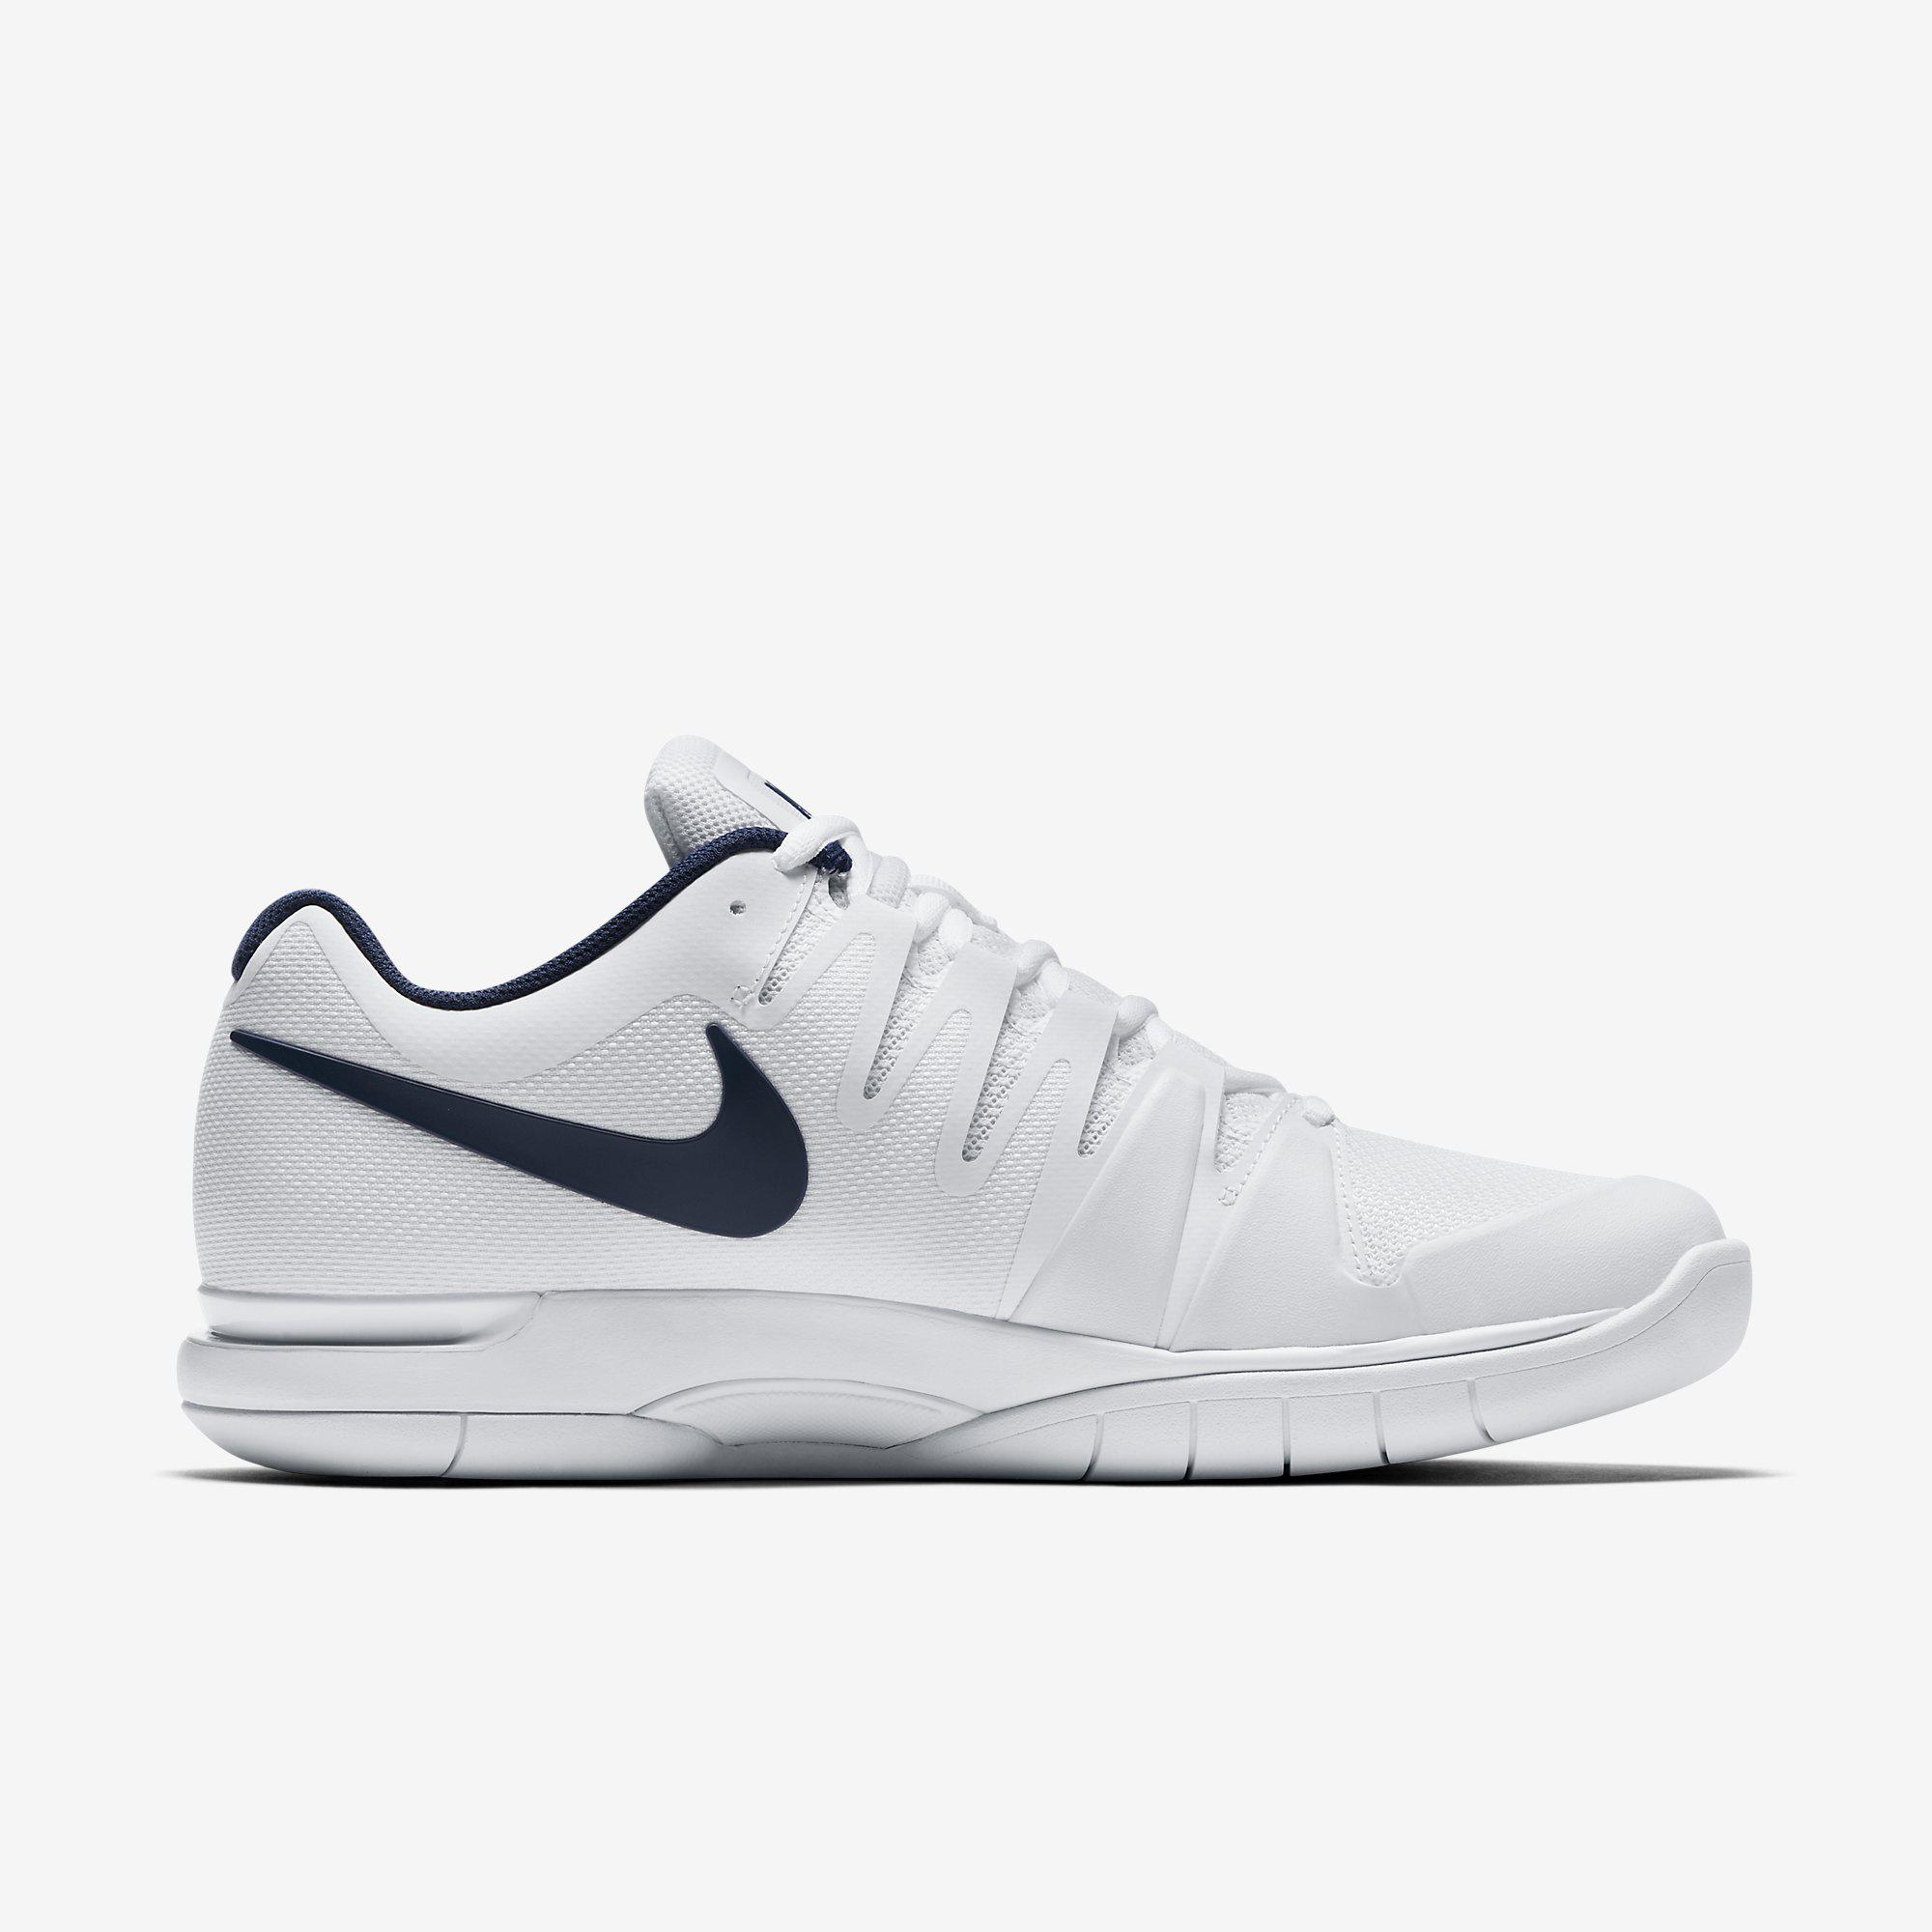 22%. Nike Mens Court Zoom Vapor 9.5 Tour Carpet Tennis ...